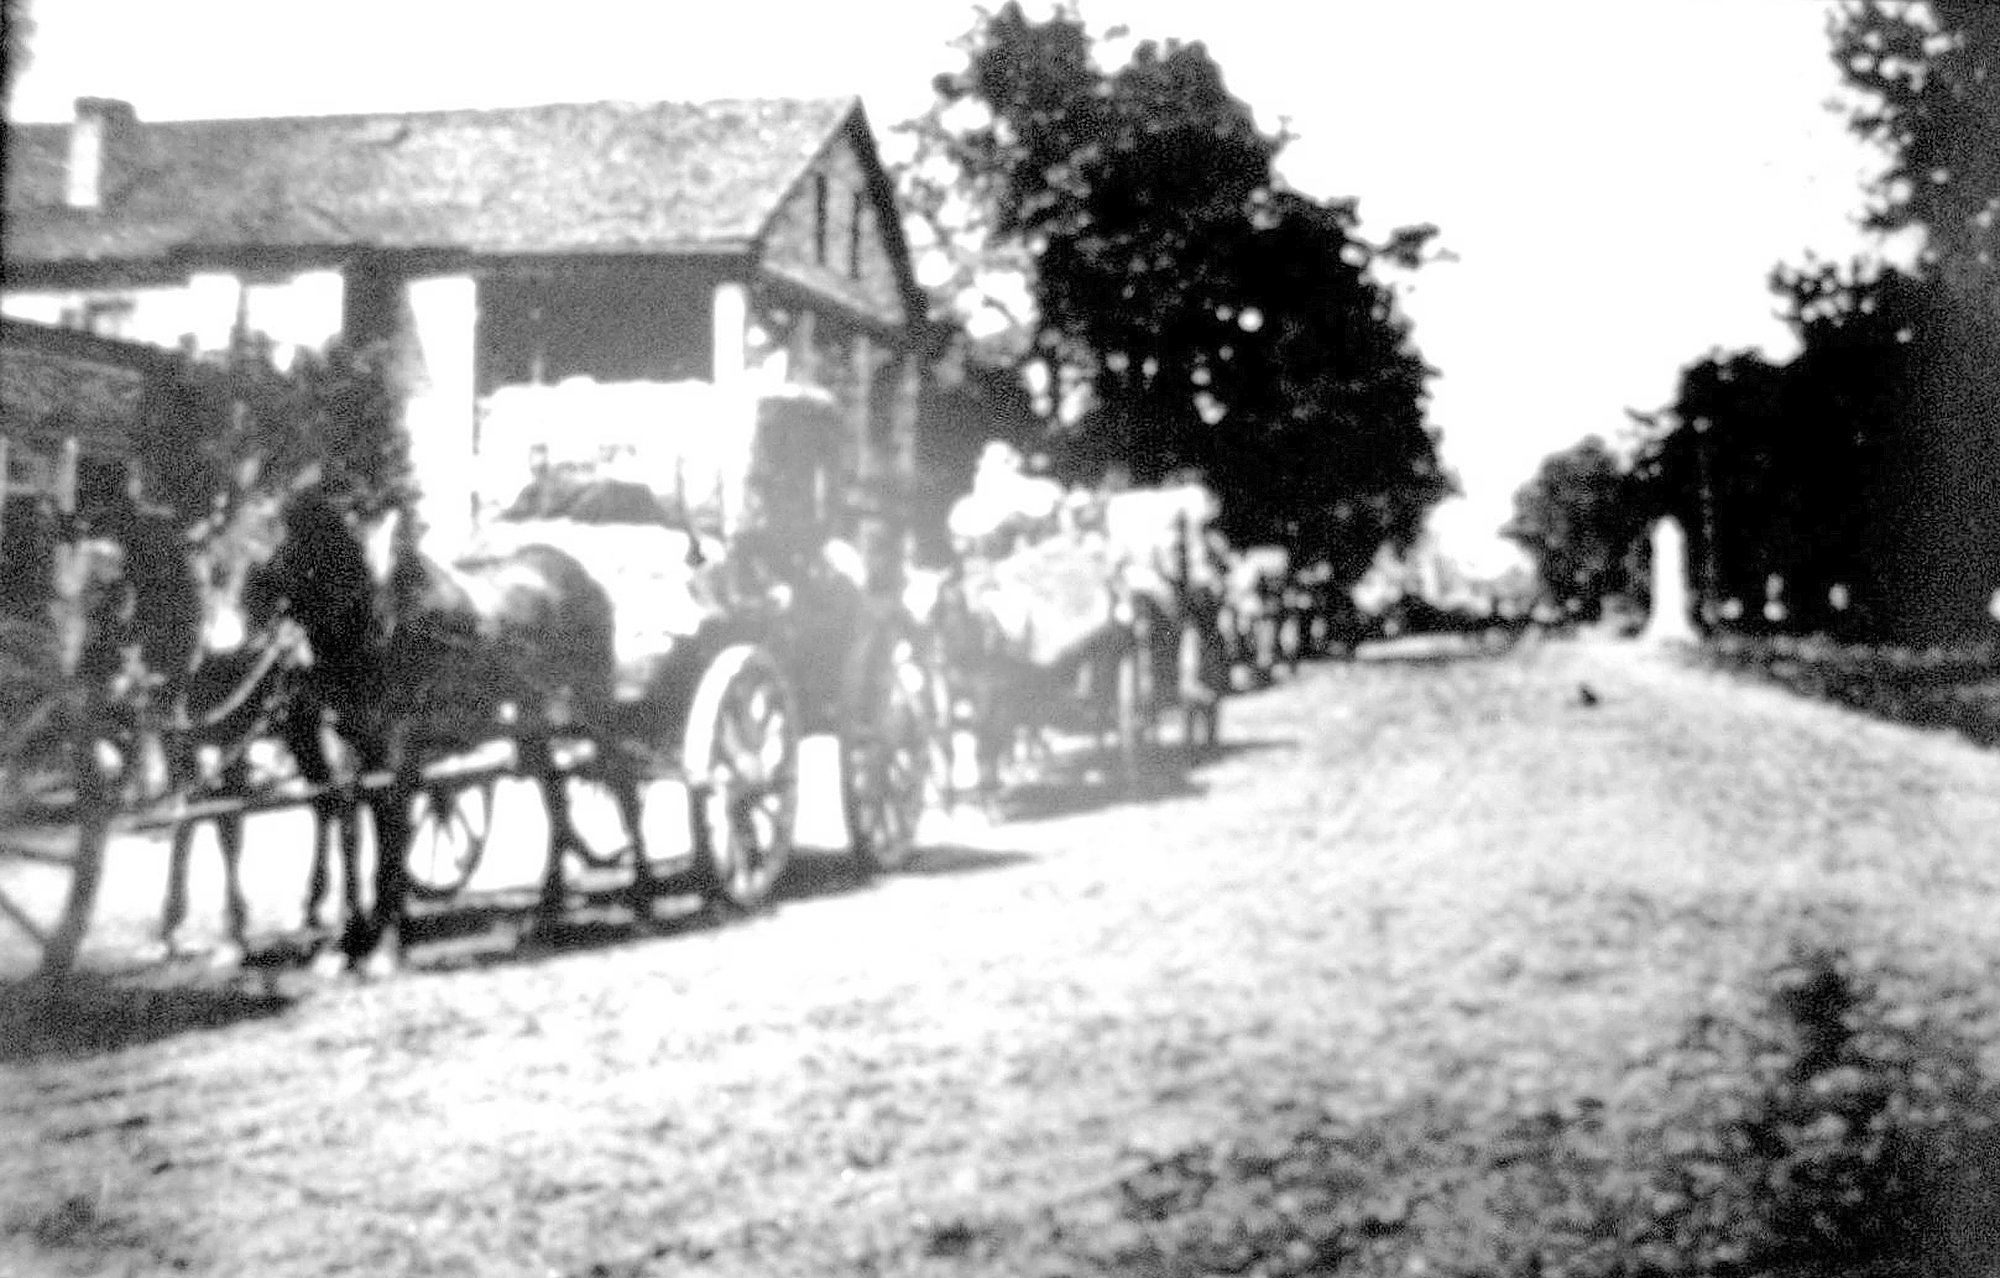 Cotton leaves the train platform passing in front of the Curtis House circa 1900.